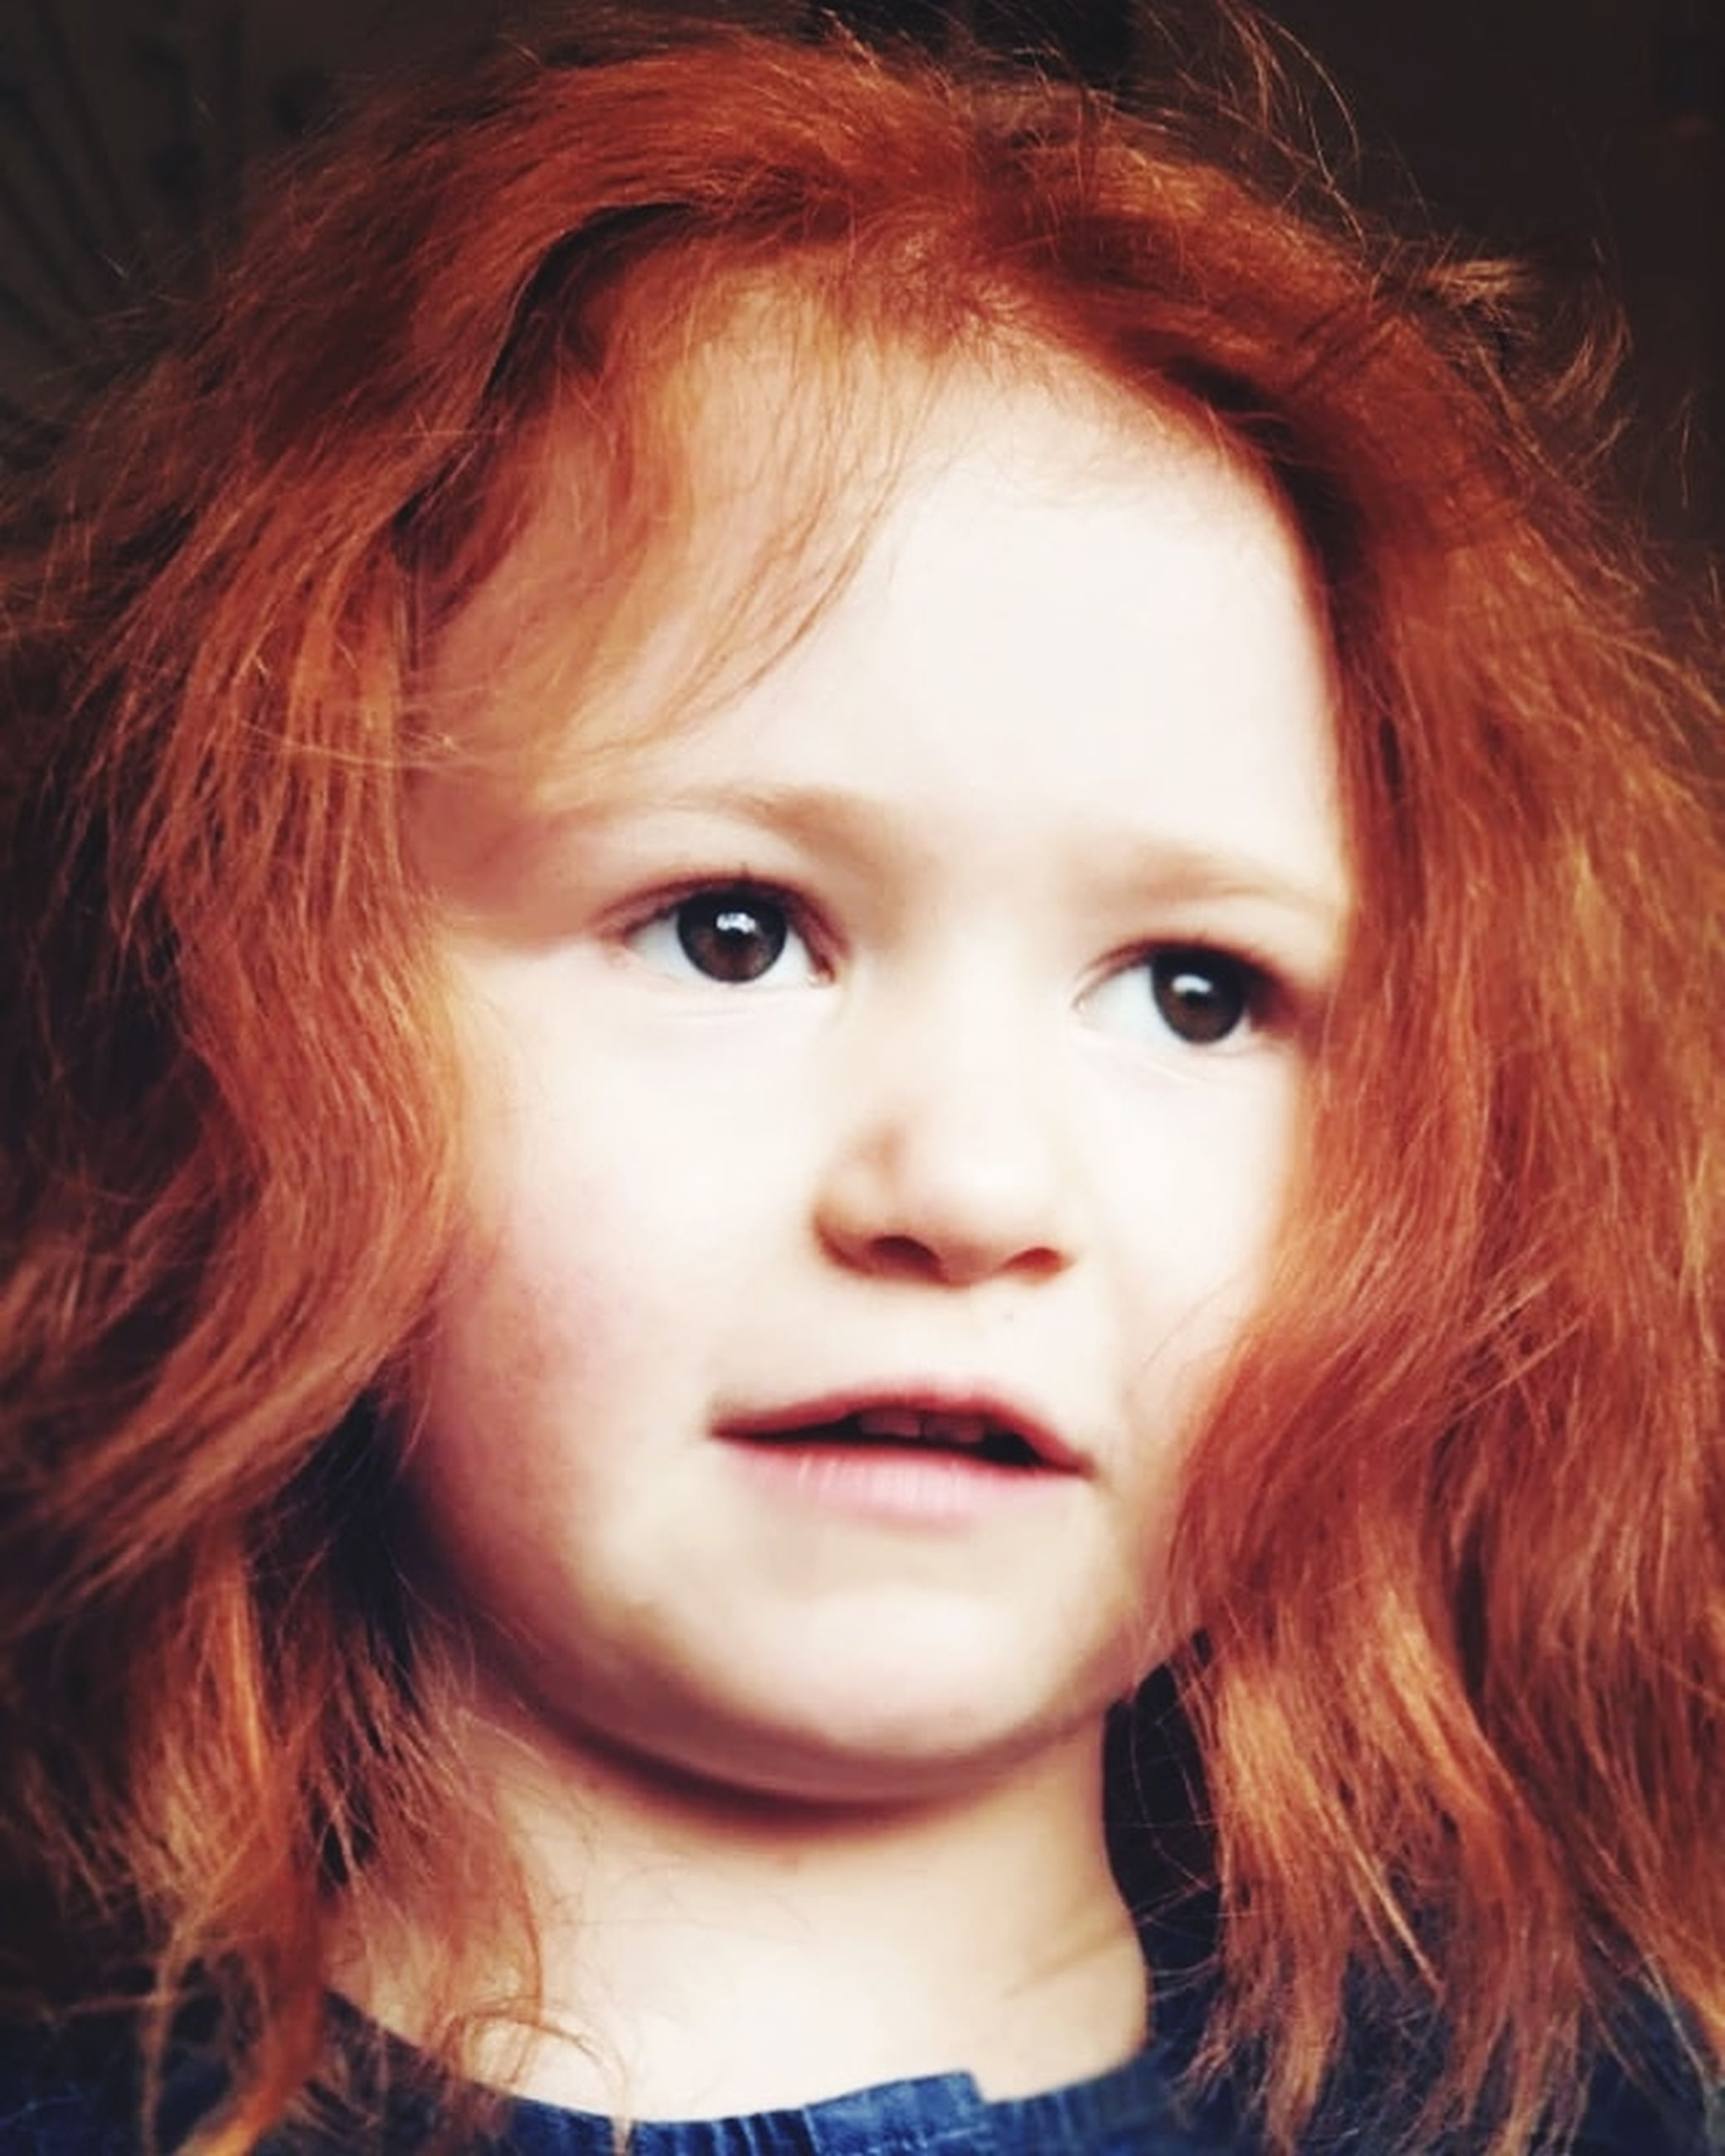 portrait, redhead, headshot, one person, looking at camera, child, close-up, childhood, front view, real people, women, hairstyle, hair, indoors, body part, innocence, human body part, girls, human face, bangs, human hair, beautiful woman